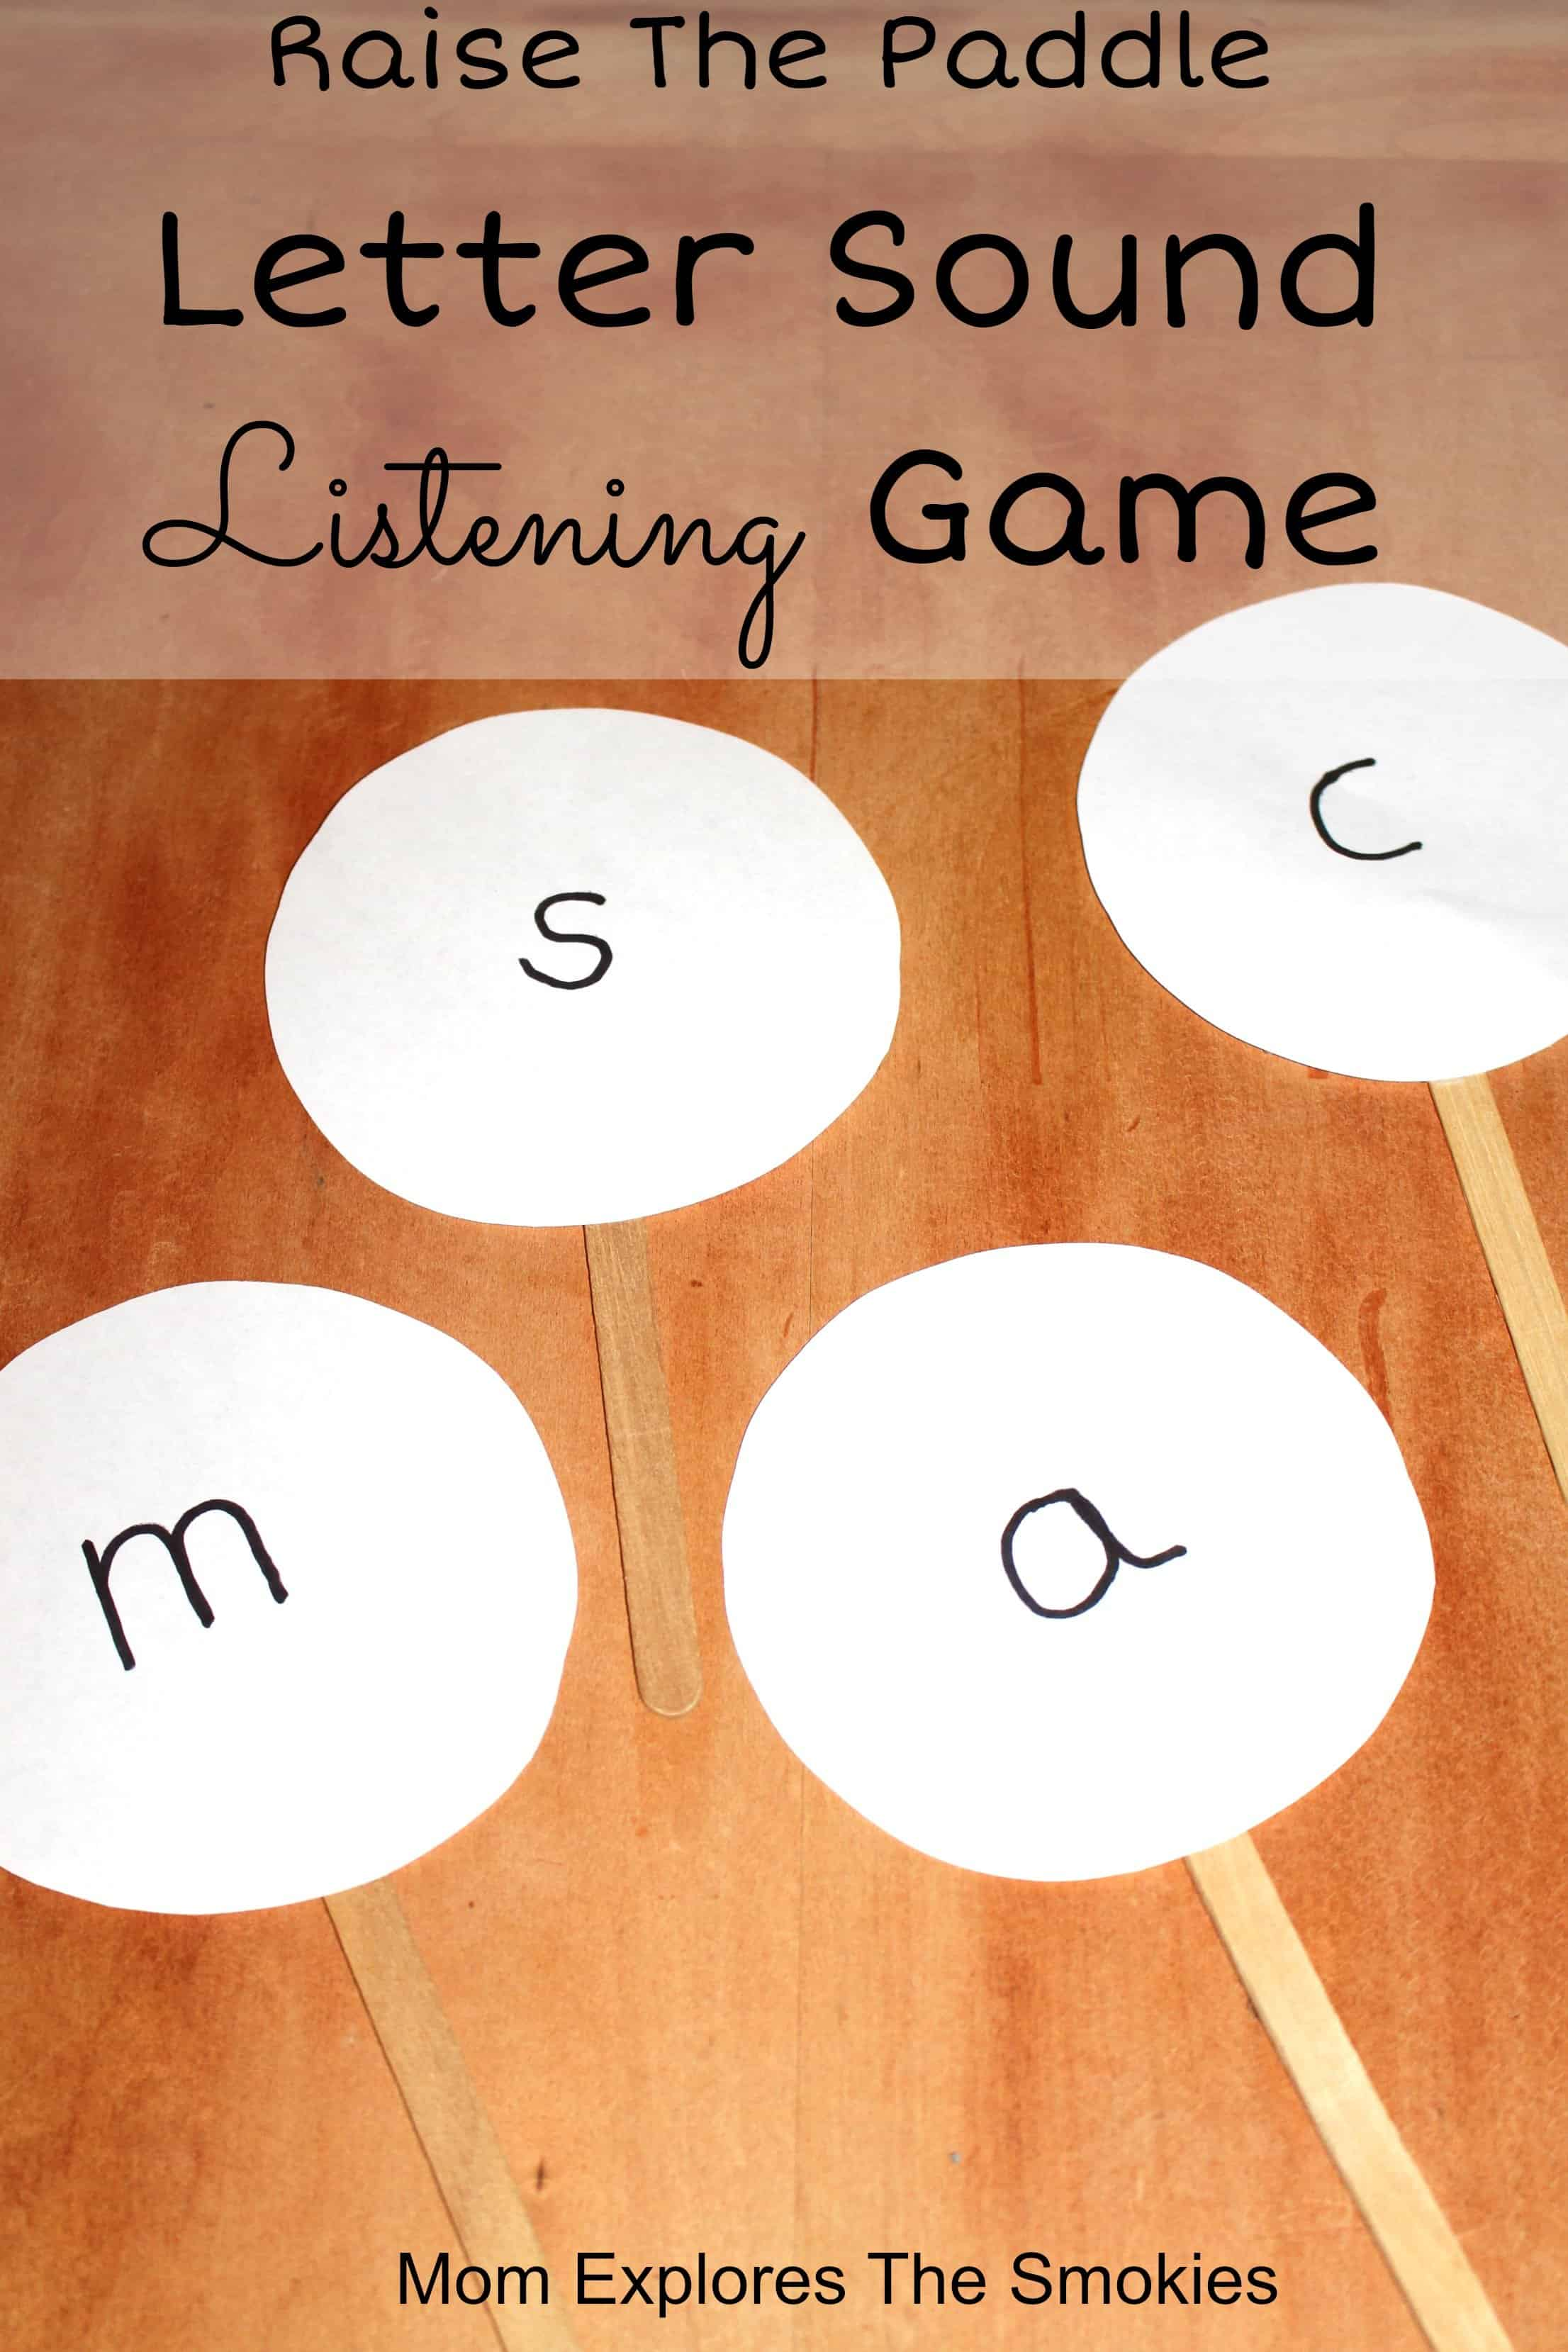 Letter Sound Listening Game, Mom Explores The Smokies